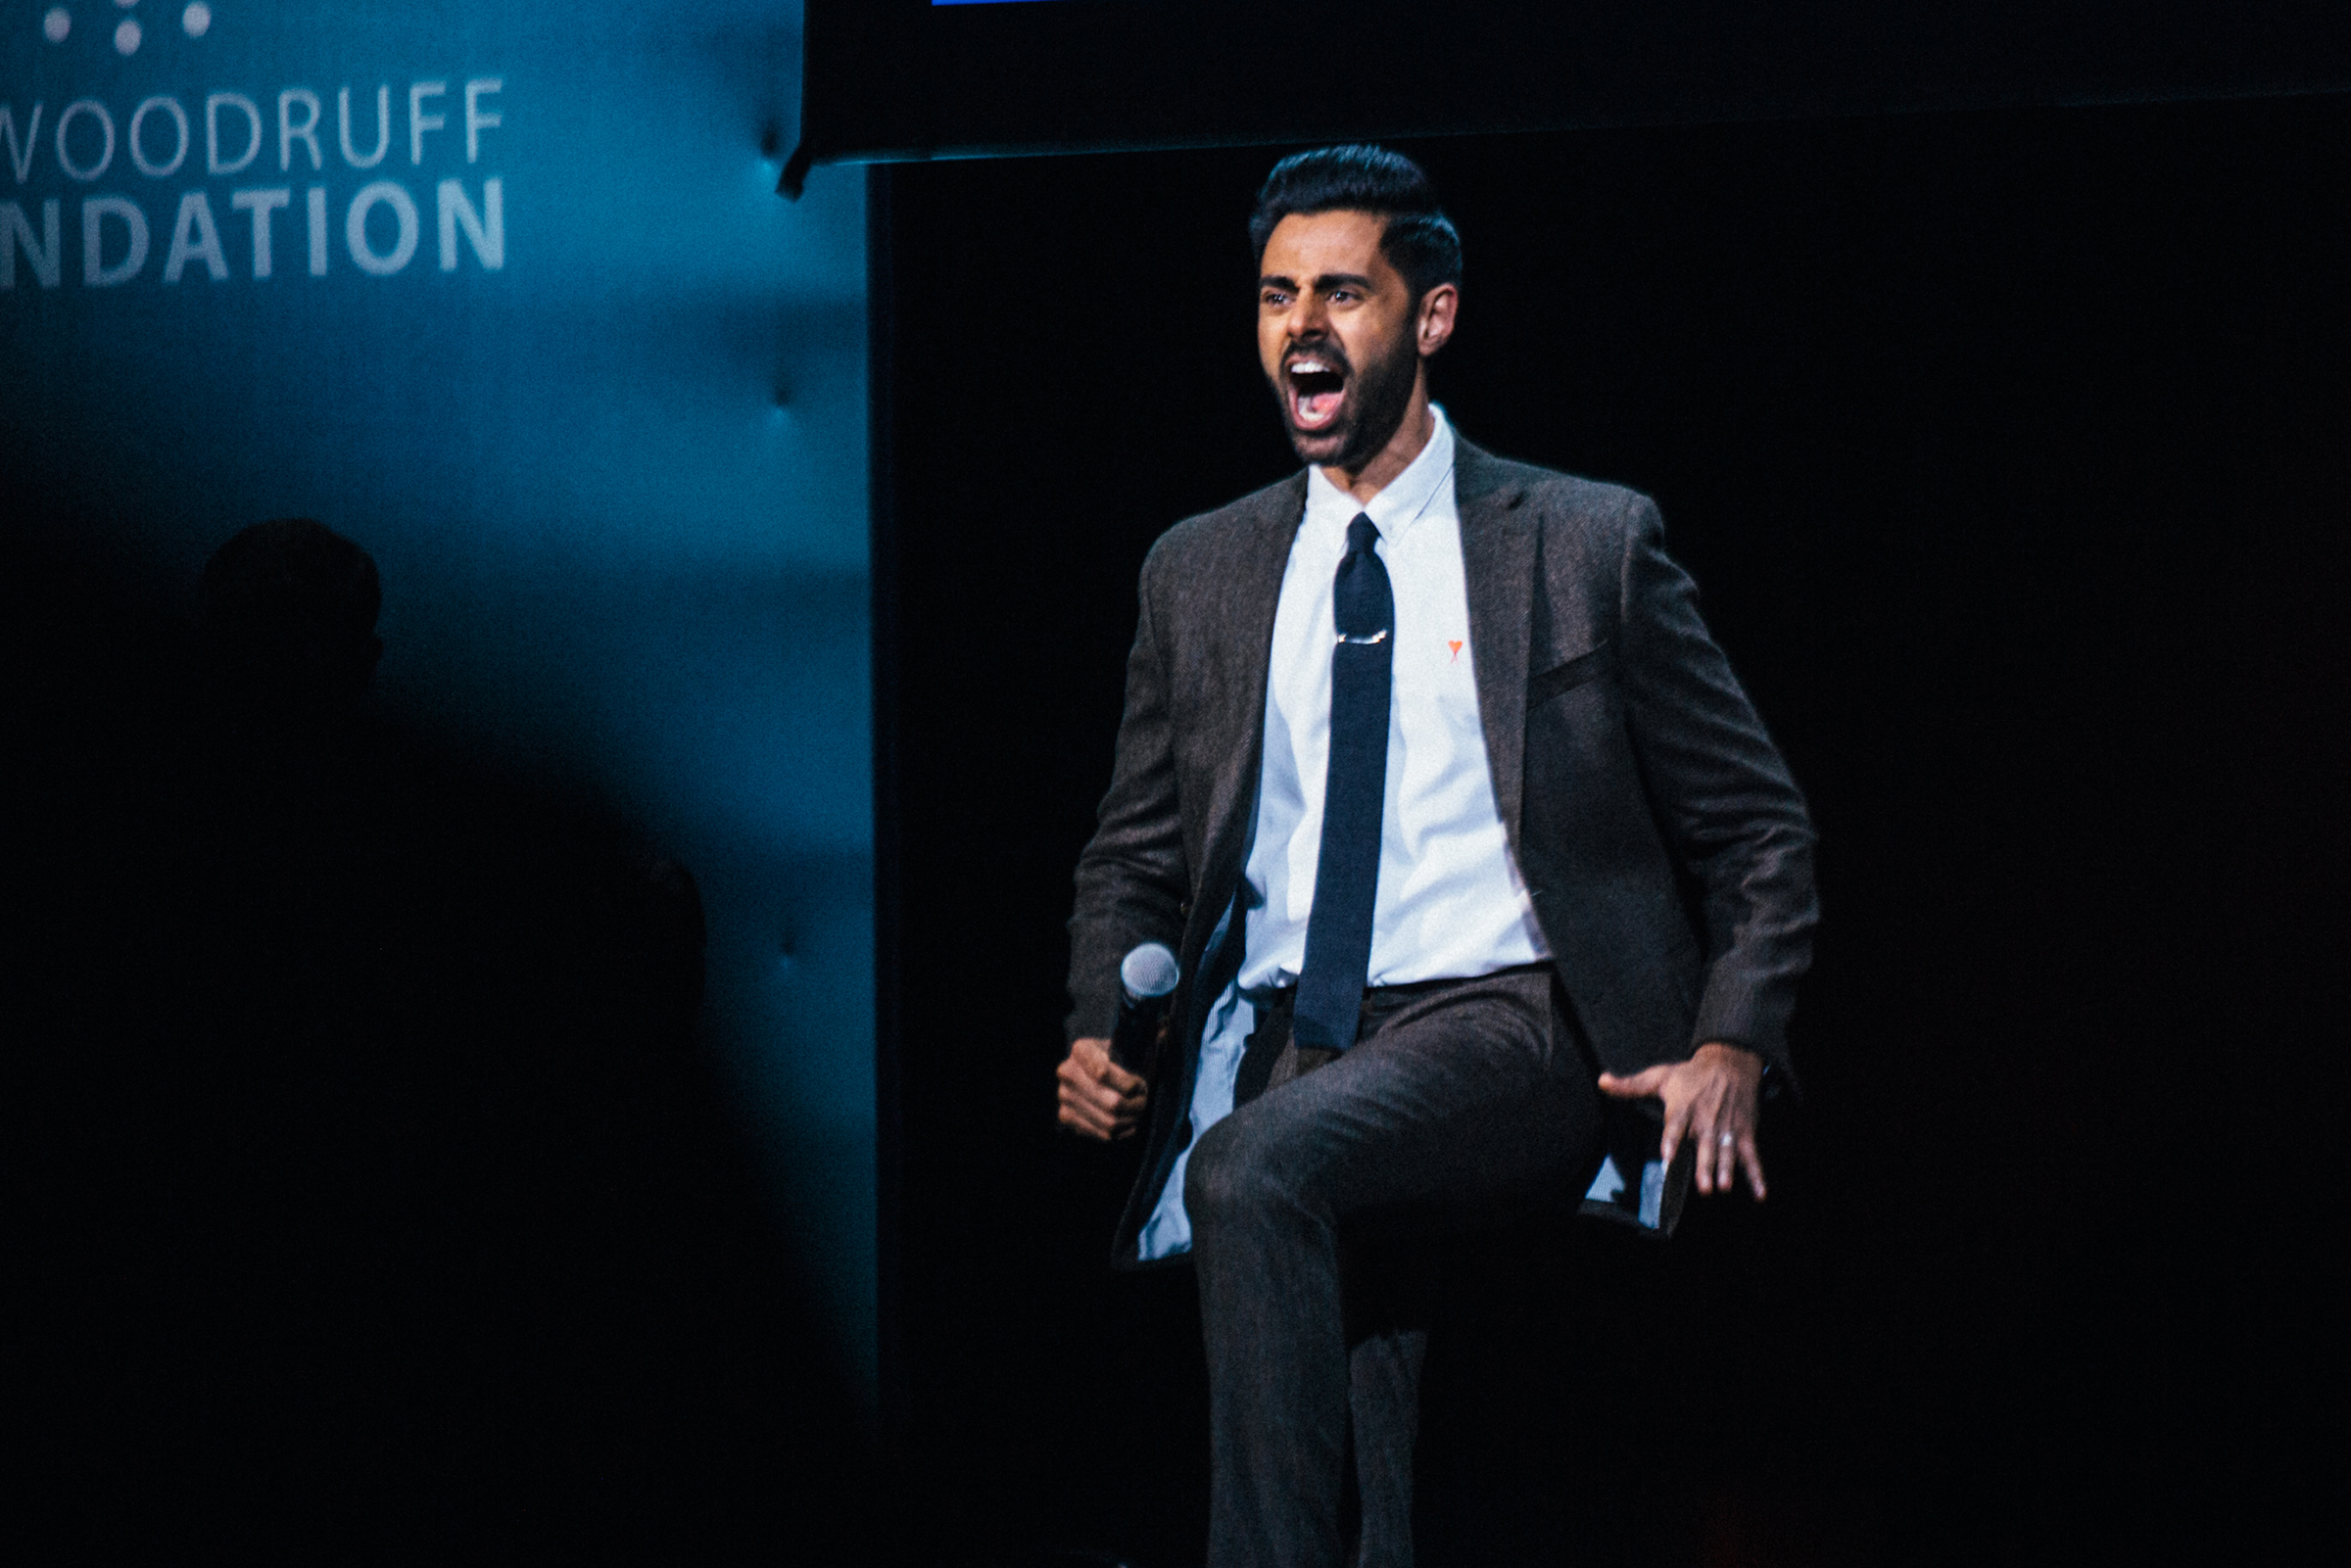 Hasan Minhaj performs during the 13th Annual Stand Up For Heroes benefit at the Hulu Theater at Madison Square Garden in New York City on November 4, 2019